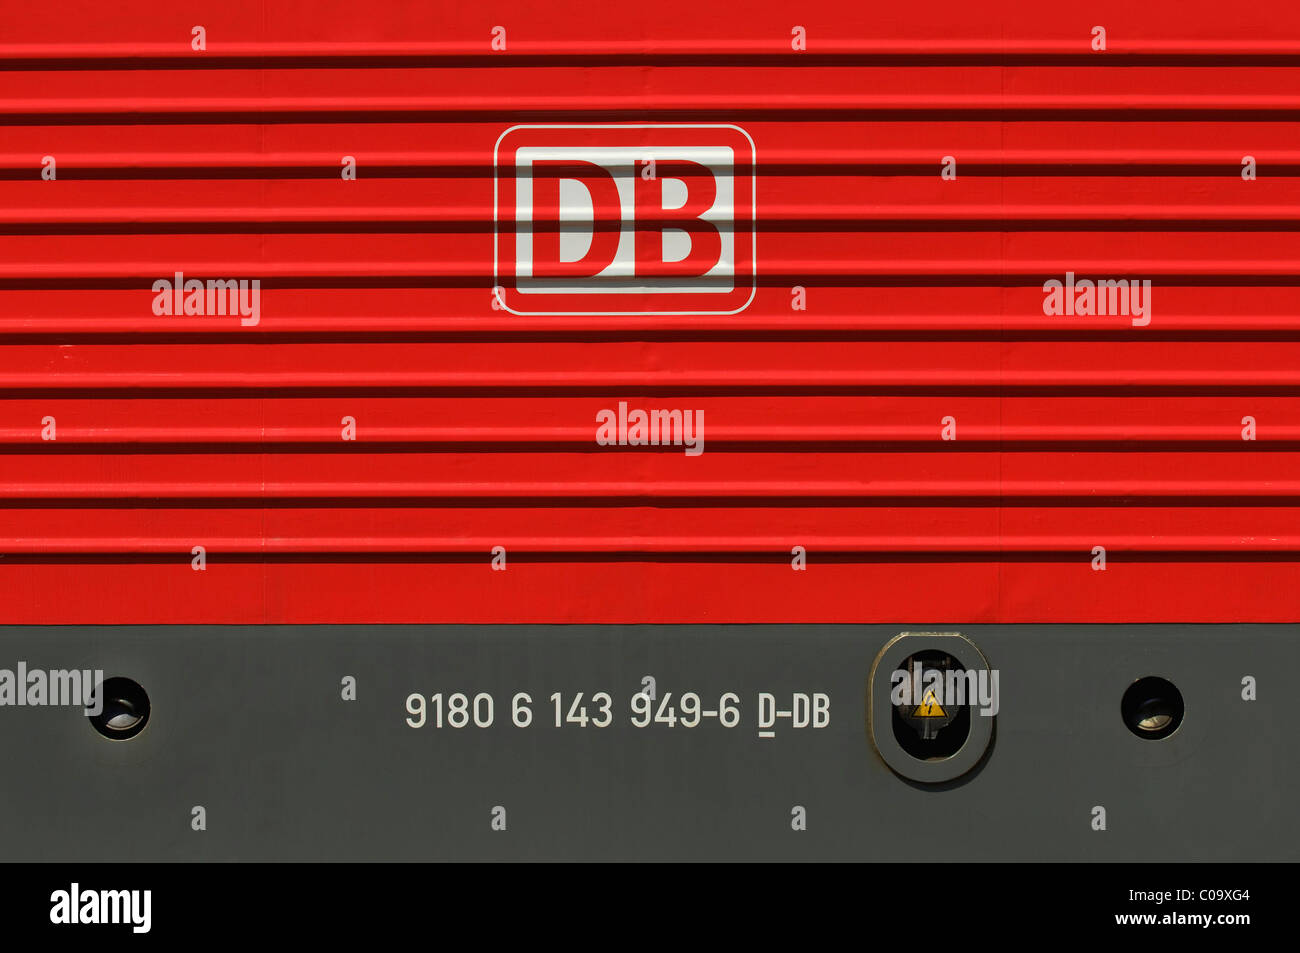 DB, railway logo on a red electric locomotive - Stock Image